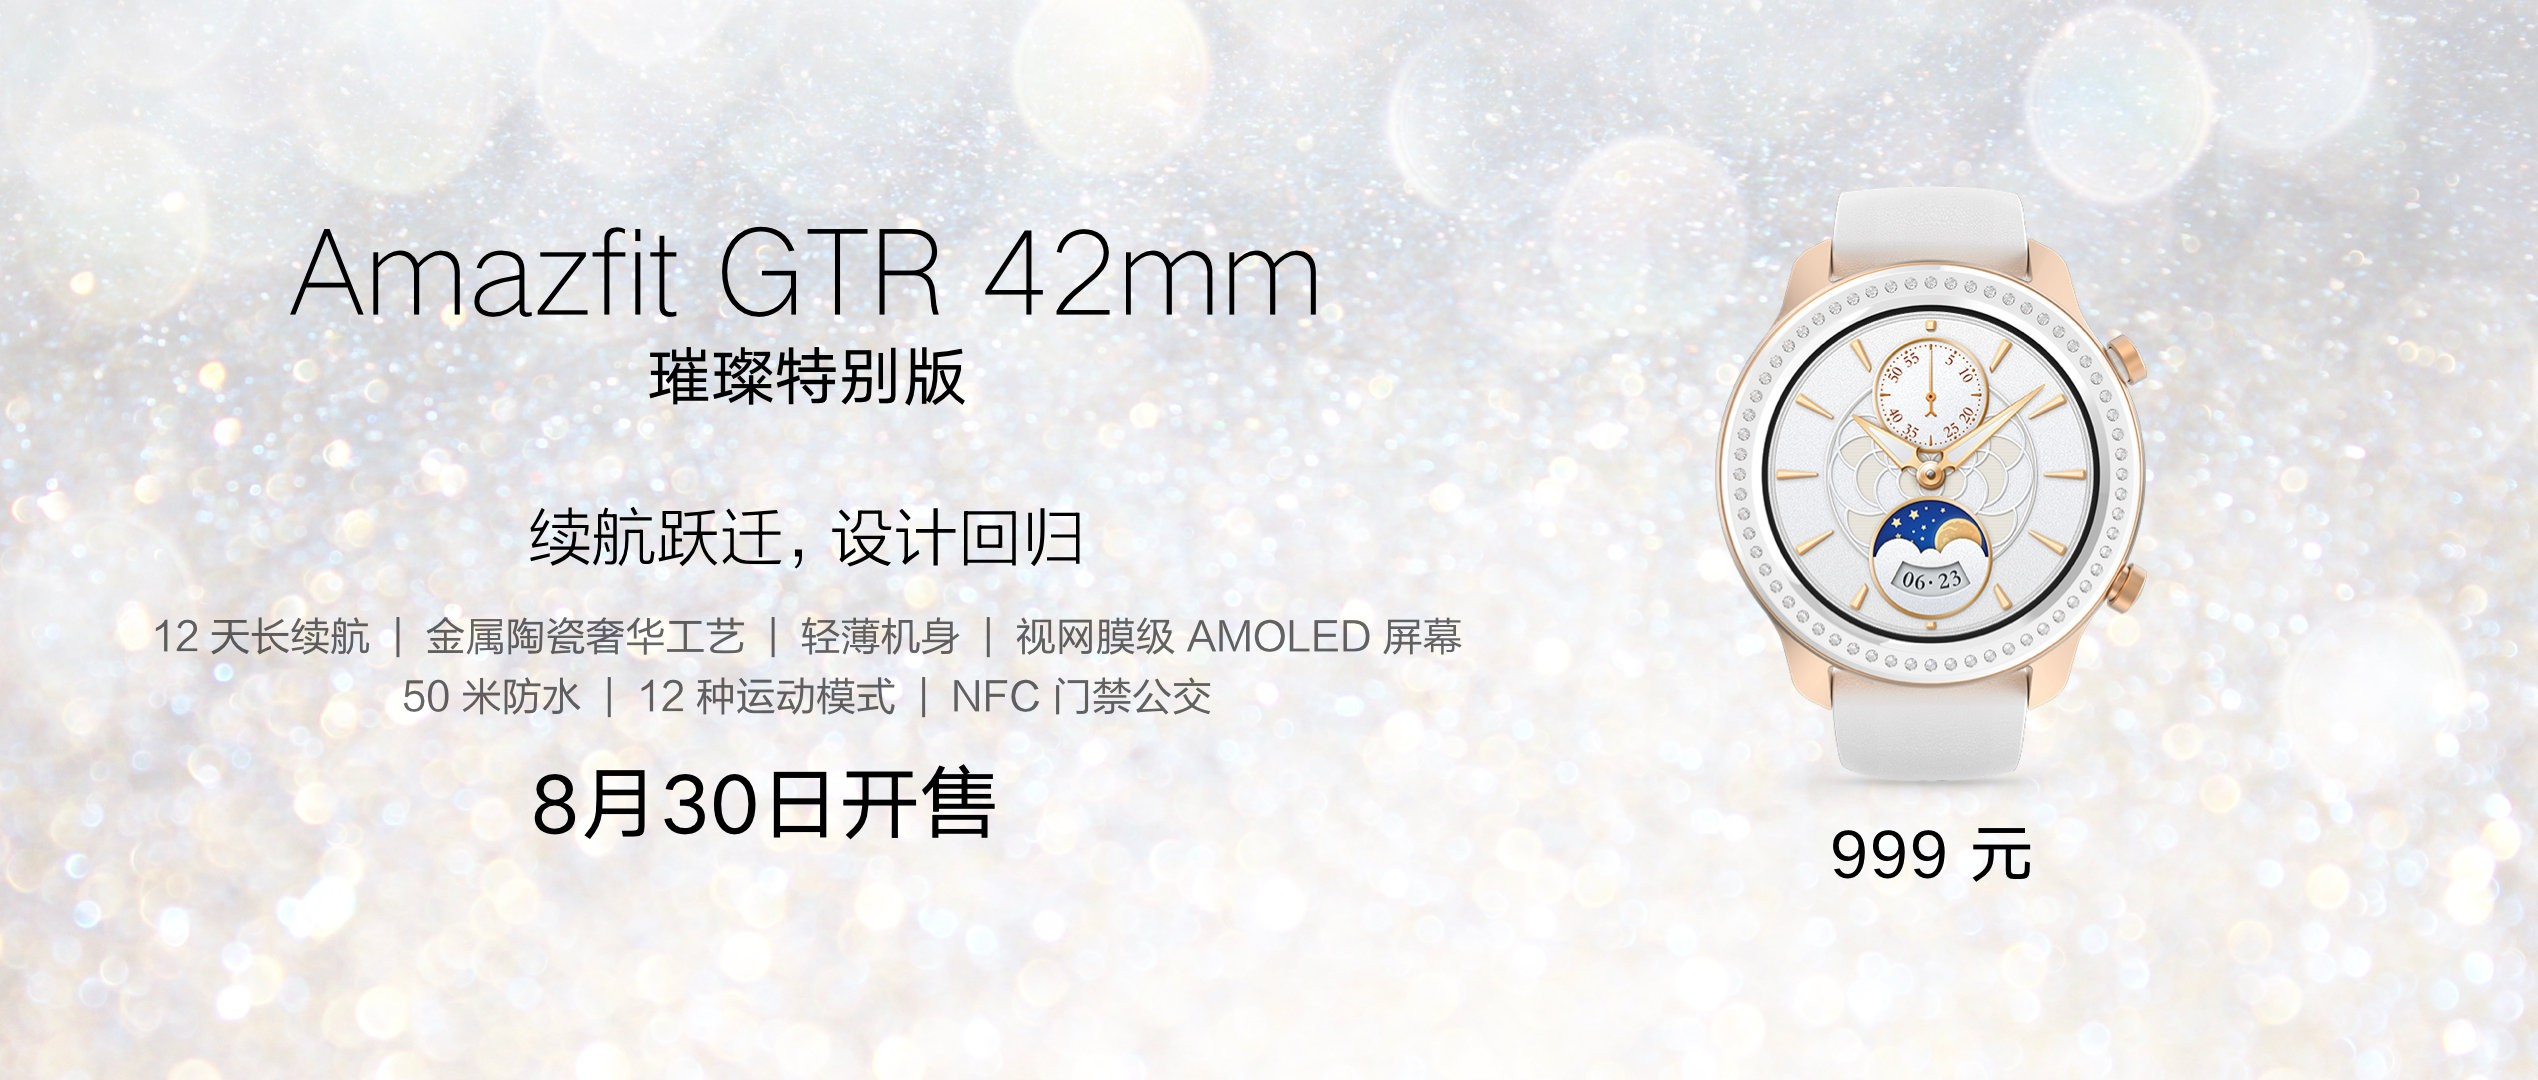 Huami Amazfit GTR 42mm Special Edition Price